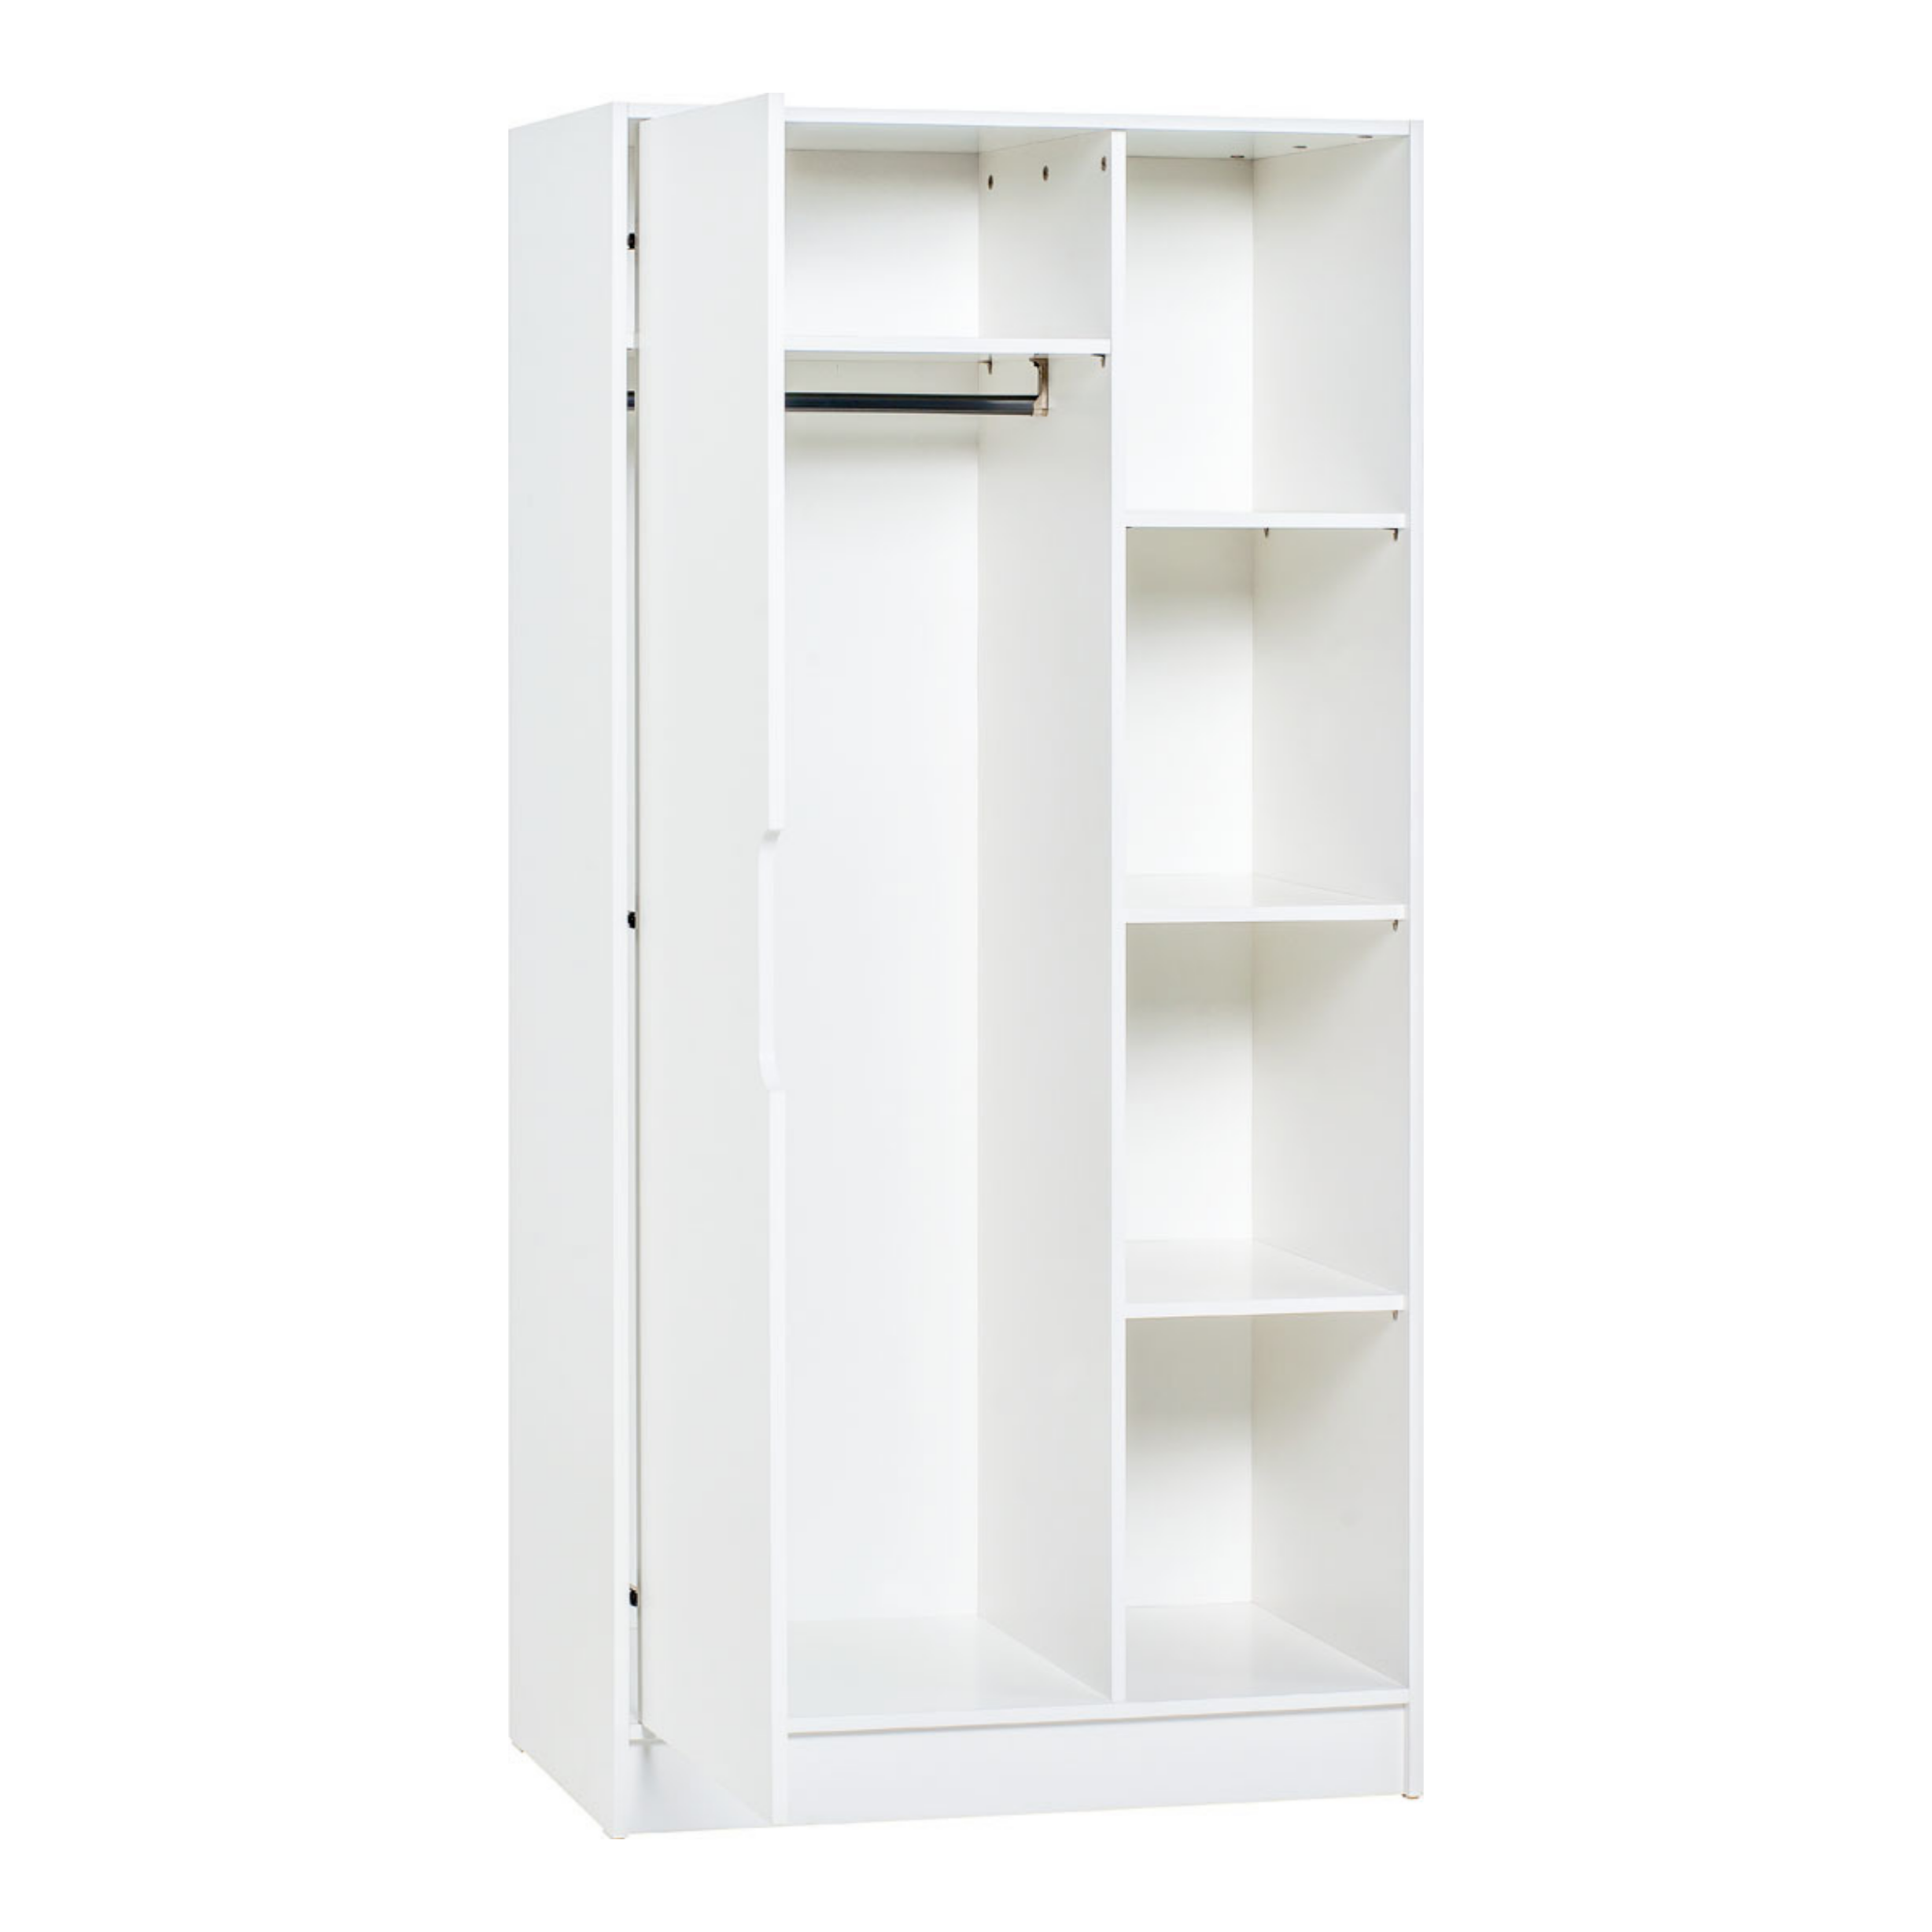 Maxim - 1 Door Wardrobe with Open Shelves